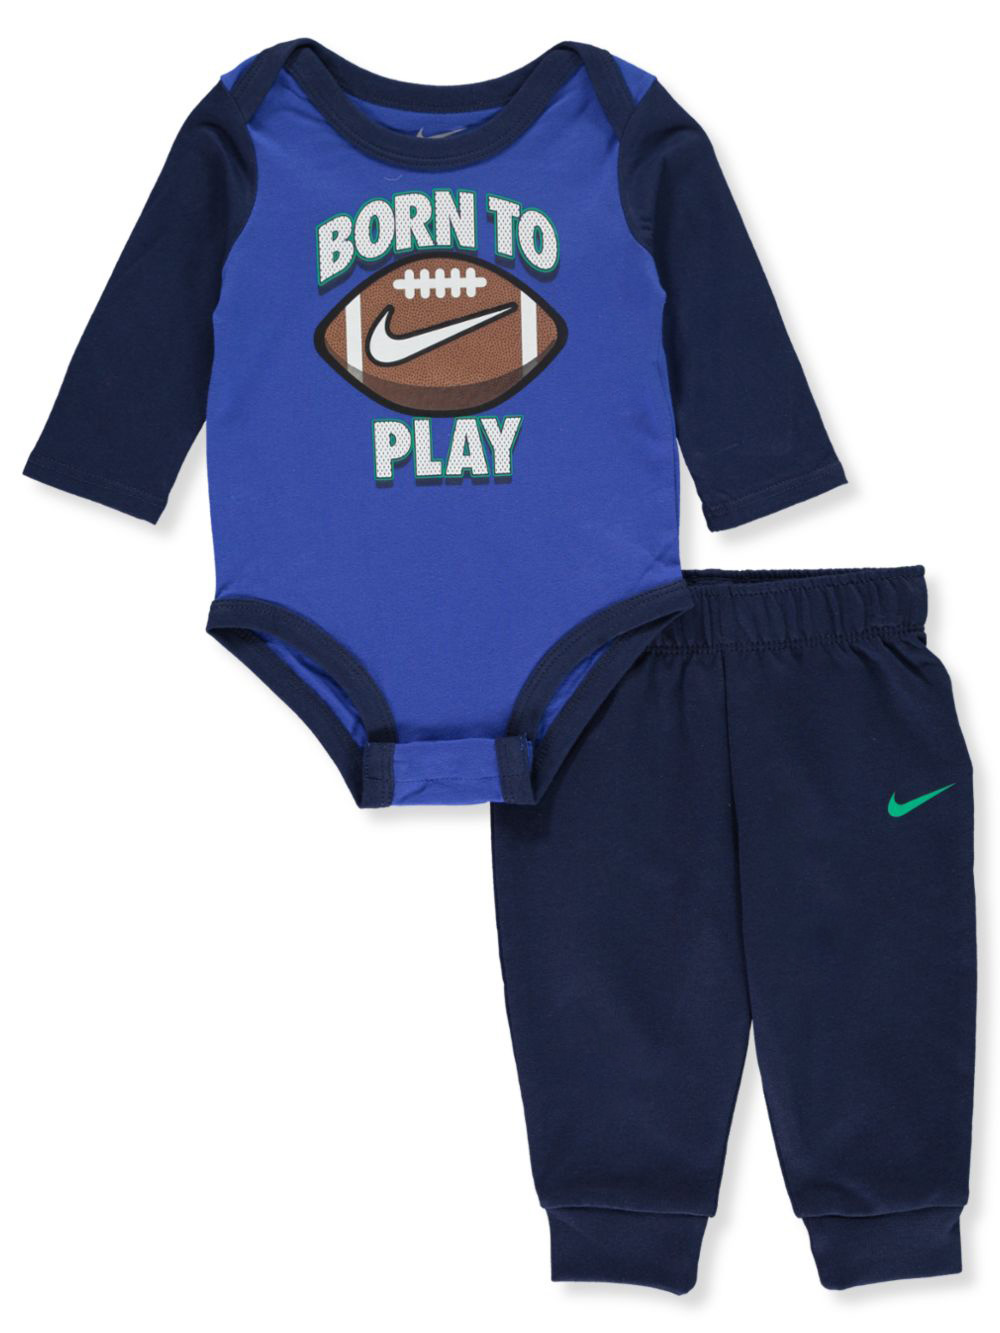 Baby Boys' 2-Piece Joggers Set Outfit